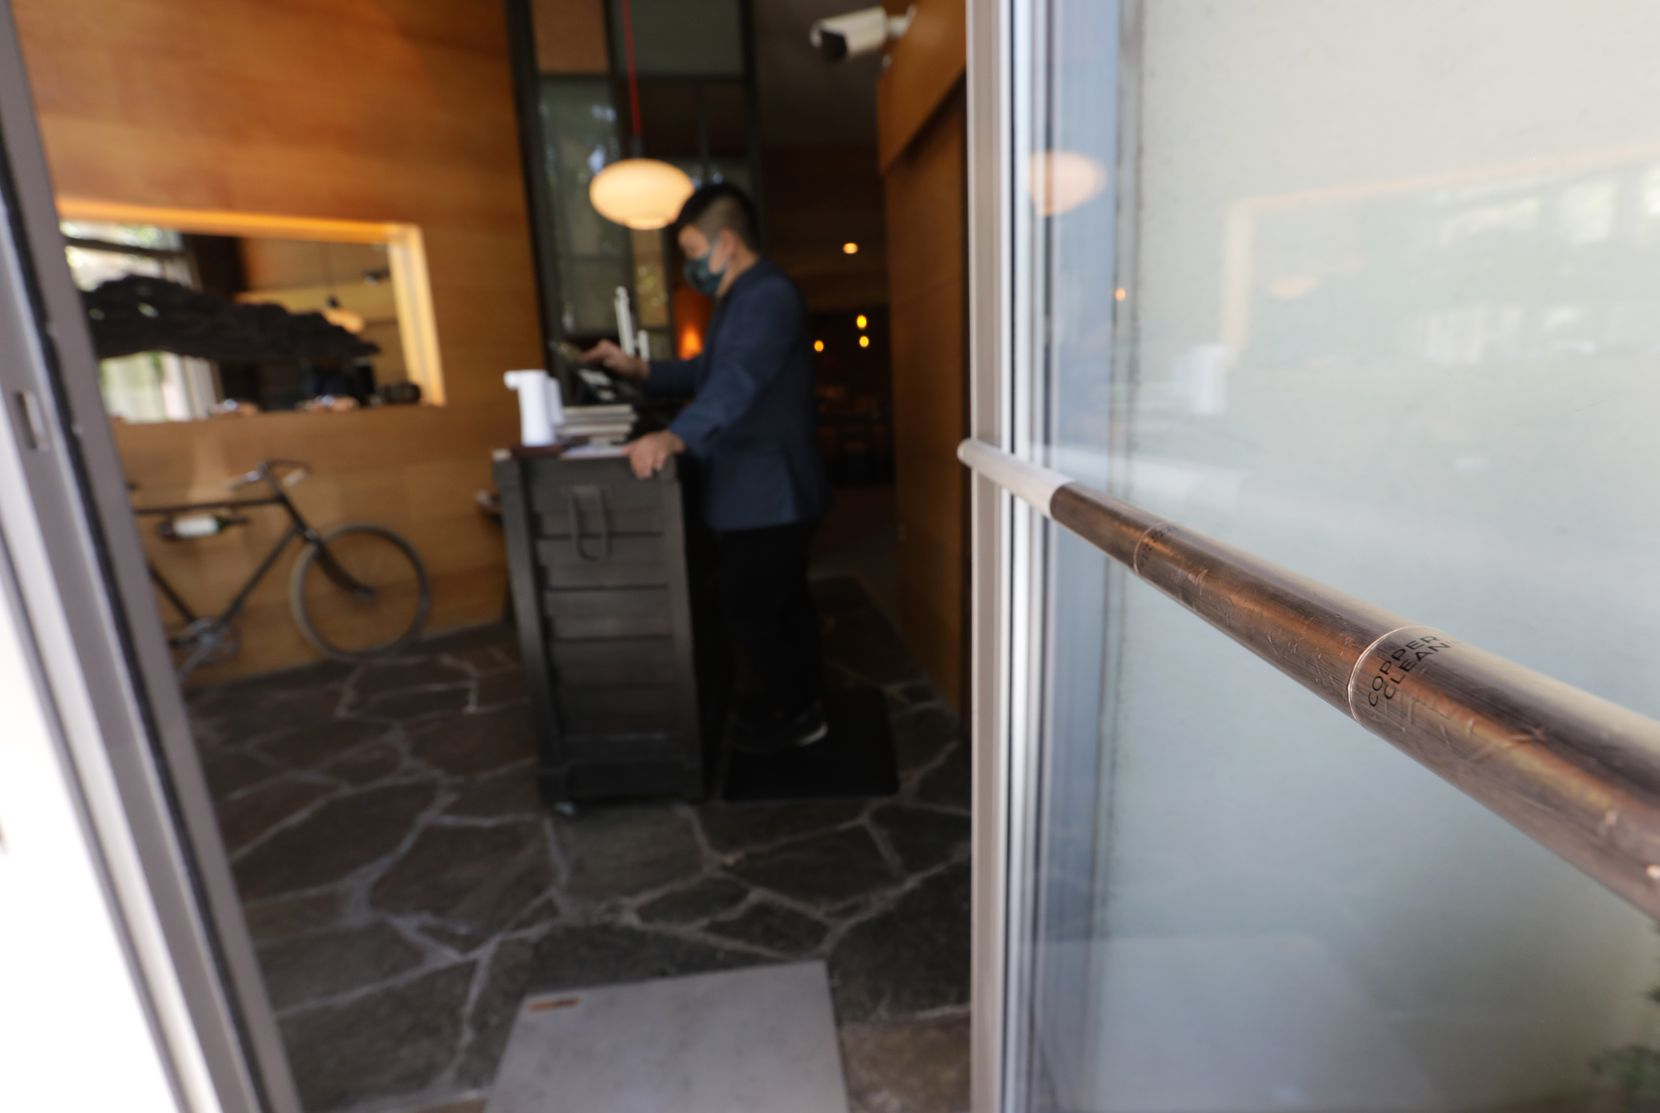 The Copper Clean brand door handle cover at Tei An restaurant in Dallas